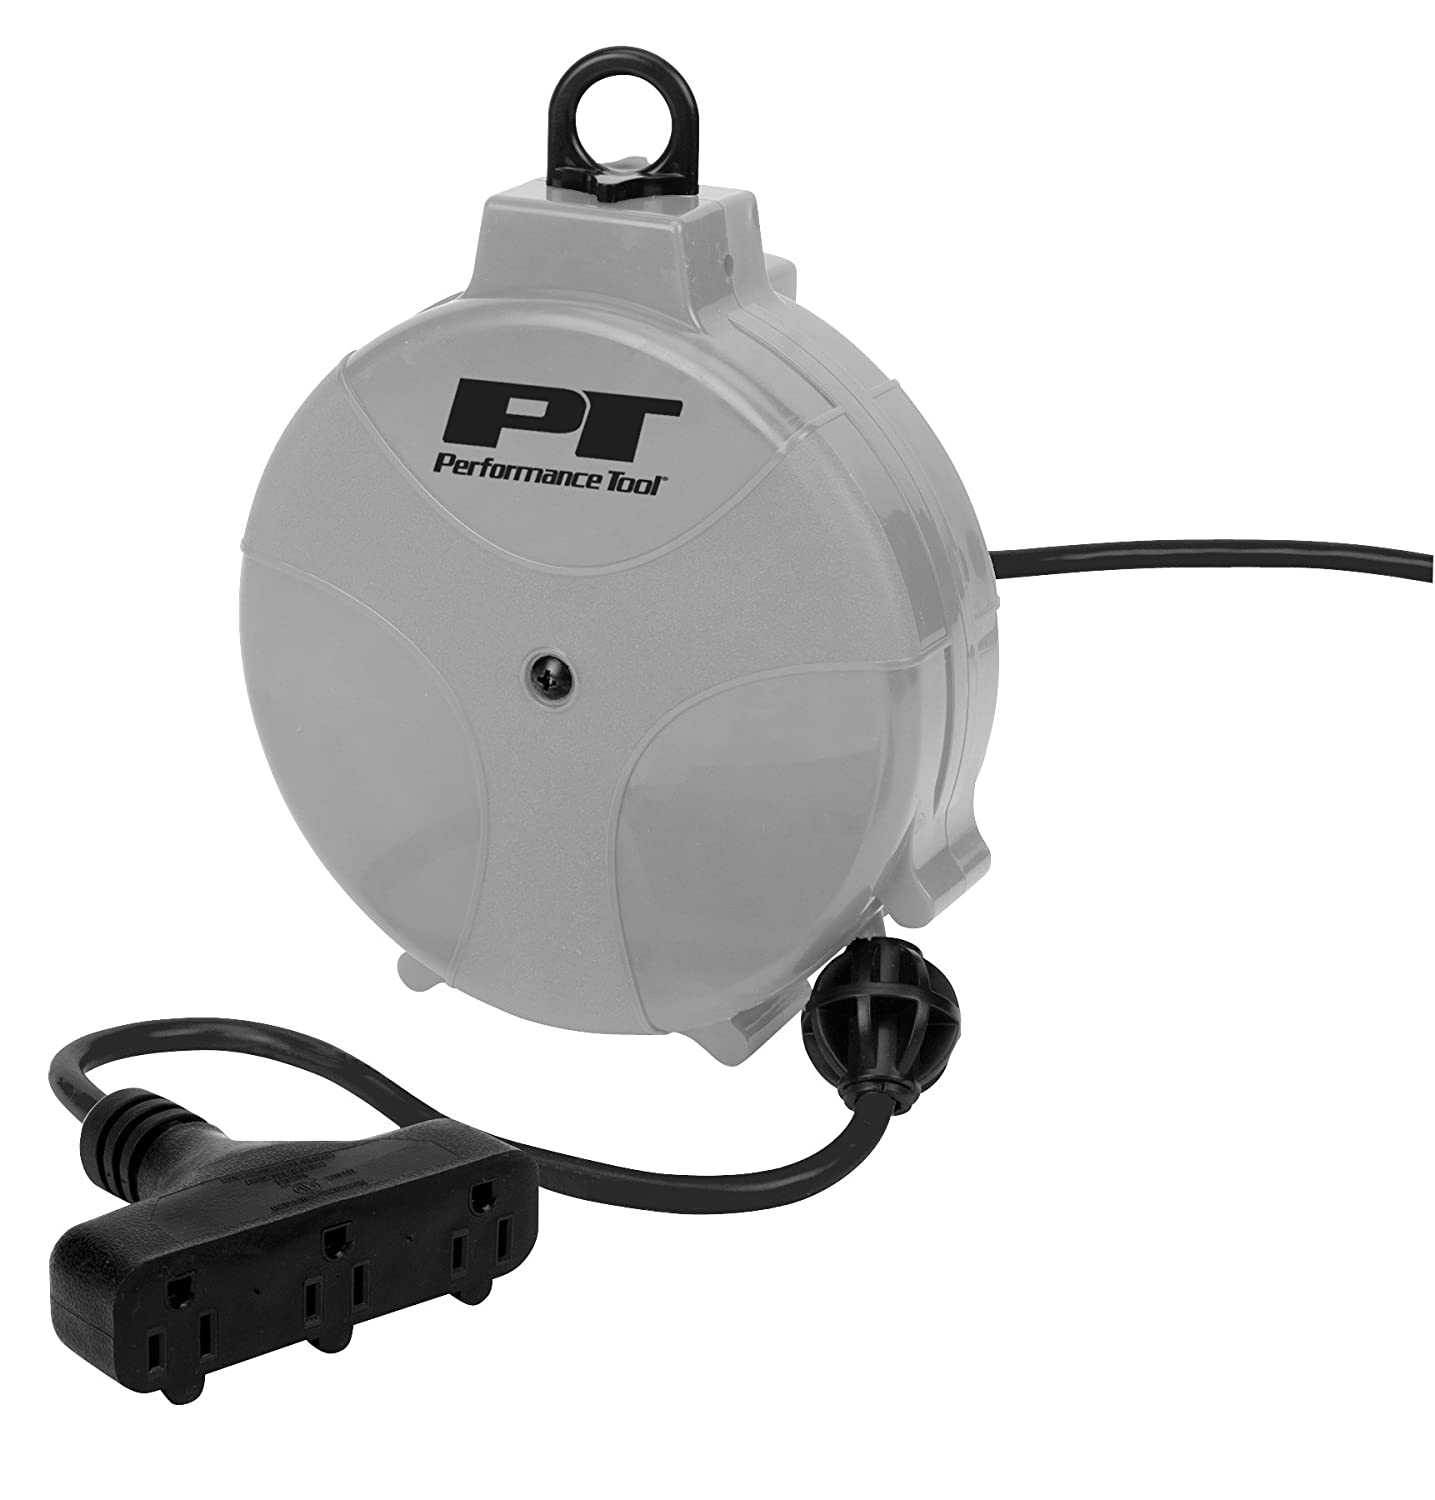 Performance Tool W2273 50ft 16 Gauge, Retractable Cord Reel with Guided Return - Install On Ceiling, Wall, Floor, or Workbench